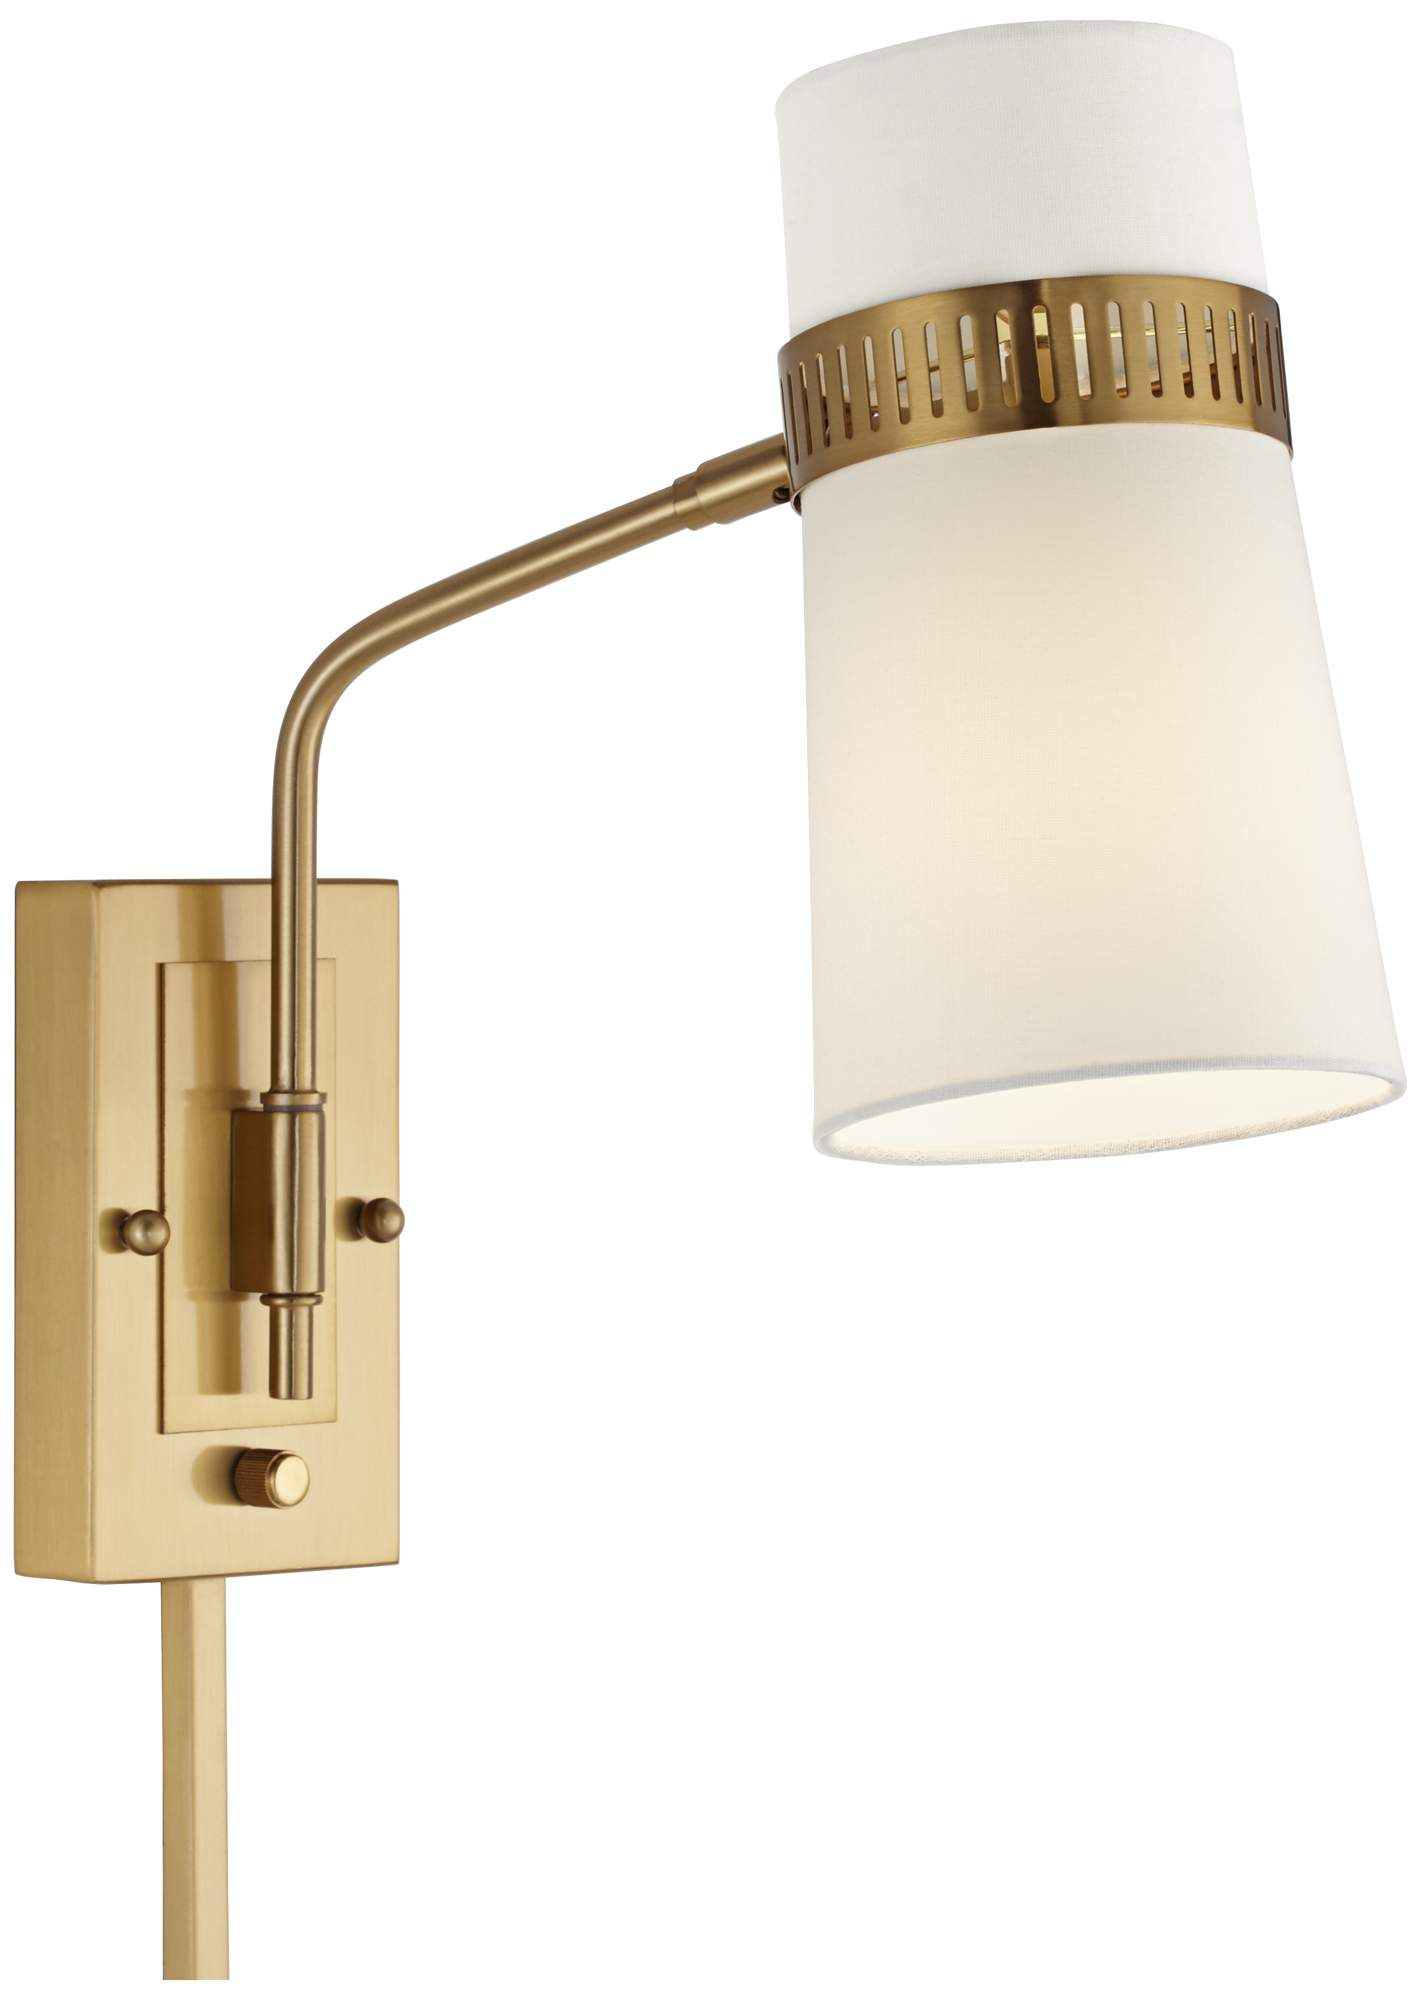 Cartwright Warm Antique Brass Plug In Wall Lamp 9f152 Lamps Plus Plug In Wall Lamp Wall Lamp Plug In Wall Sconce